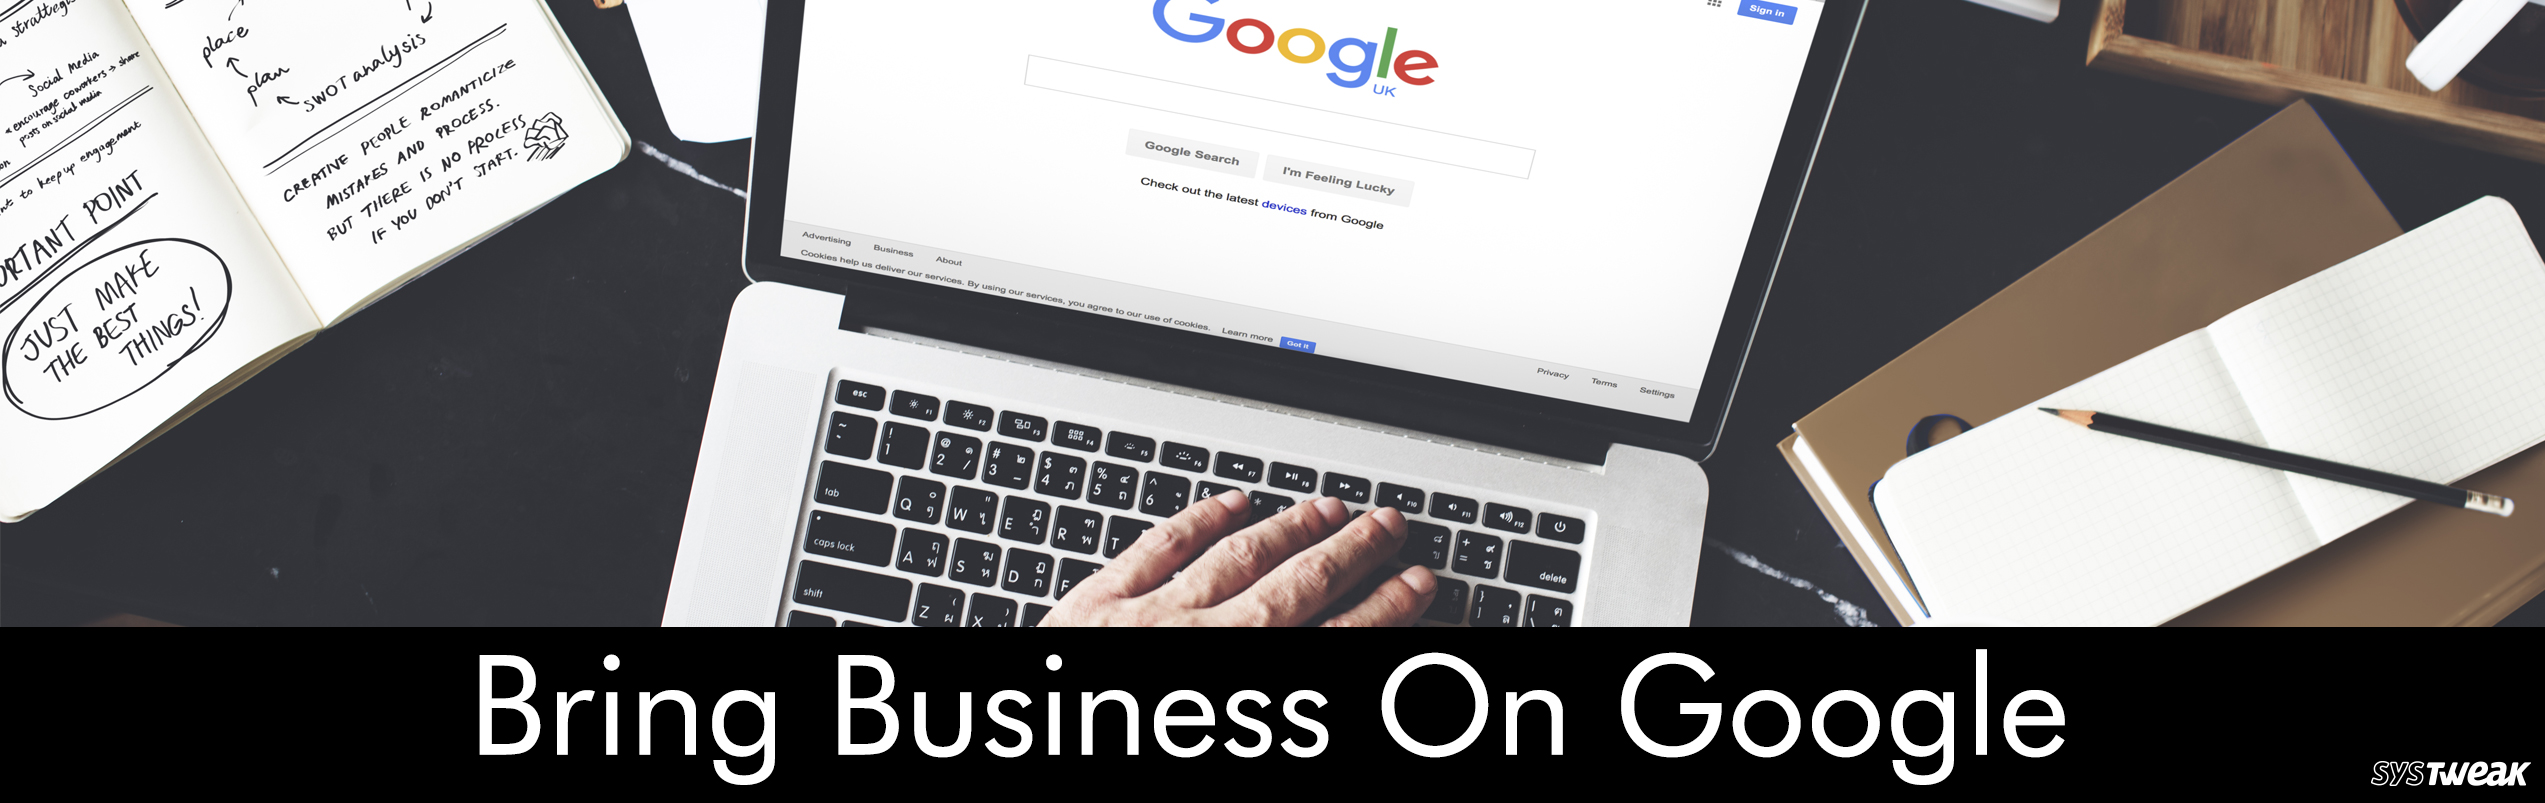 How To Grow Your Business On Google